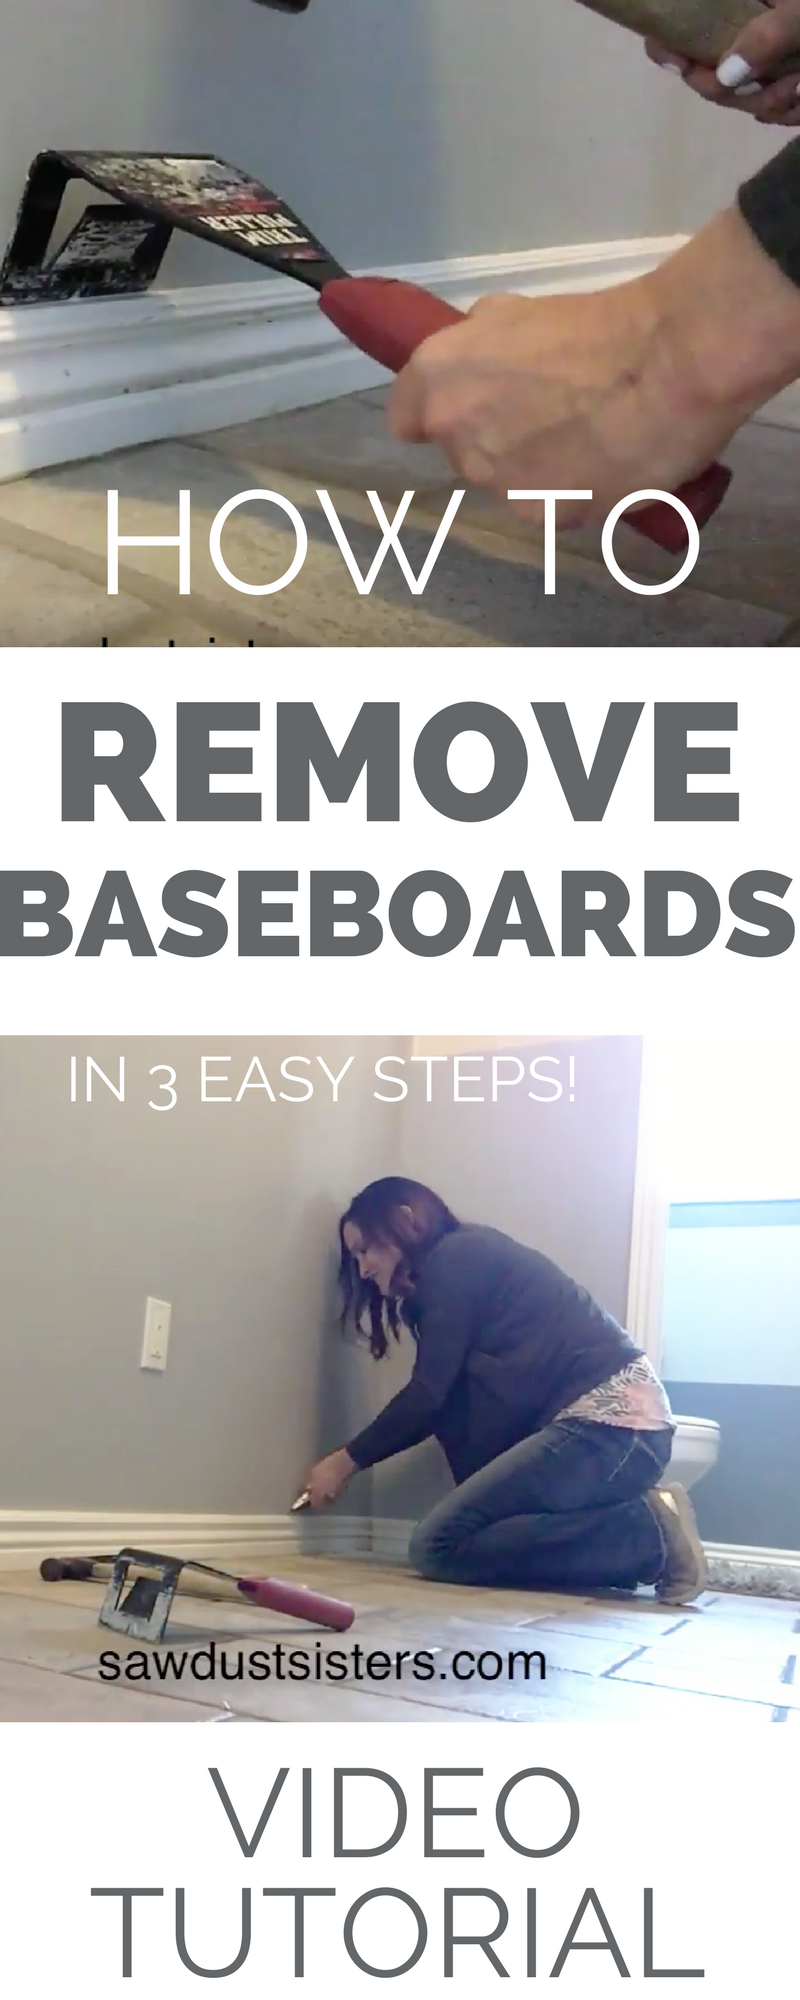 GREAT TUTORIAL for someone who has never tried to remove trim. Learning how to remove baseboards opens up all of sorts DIY possibilities!